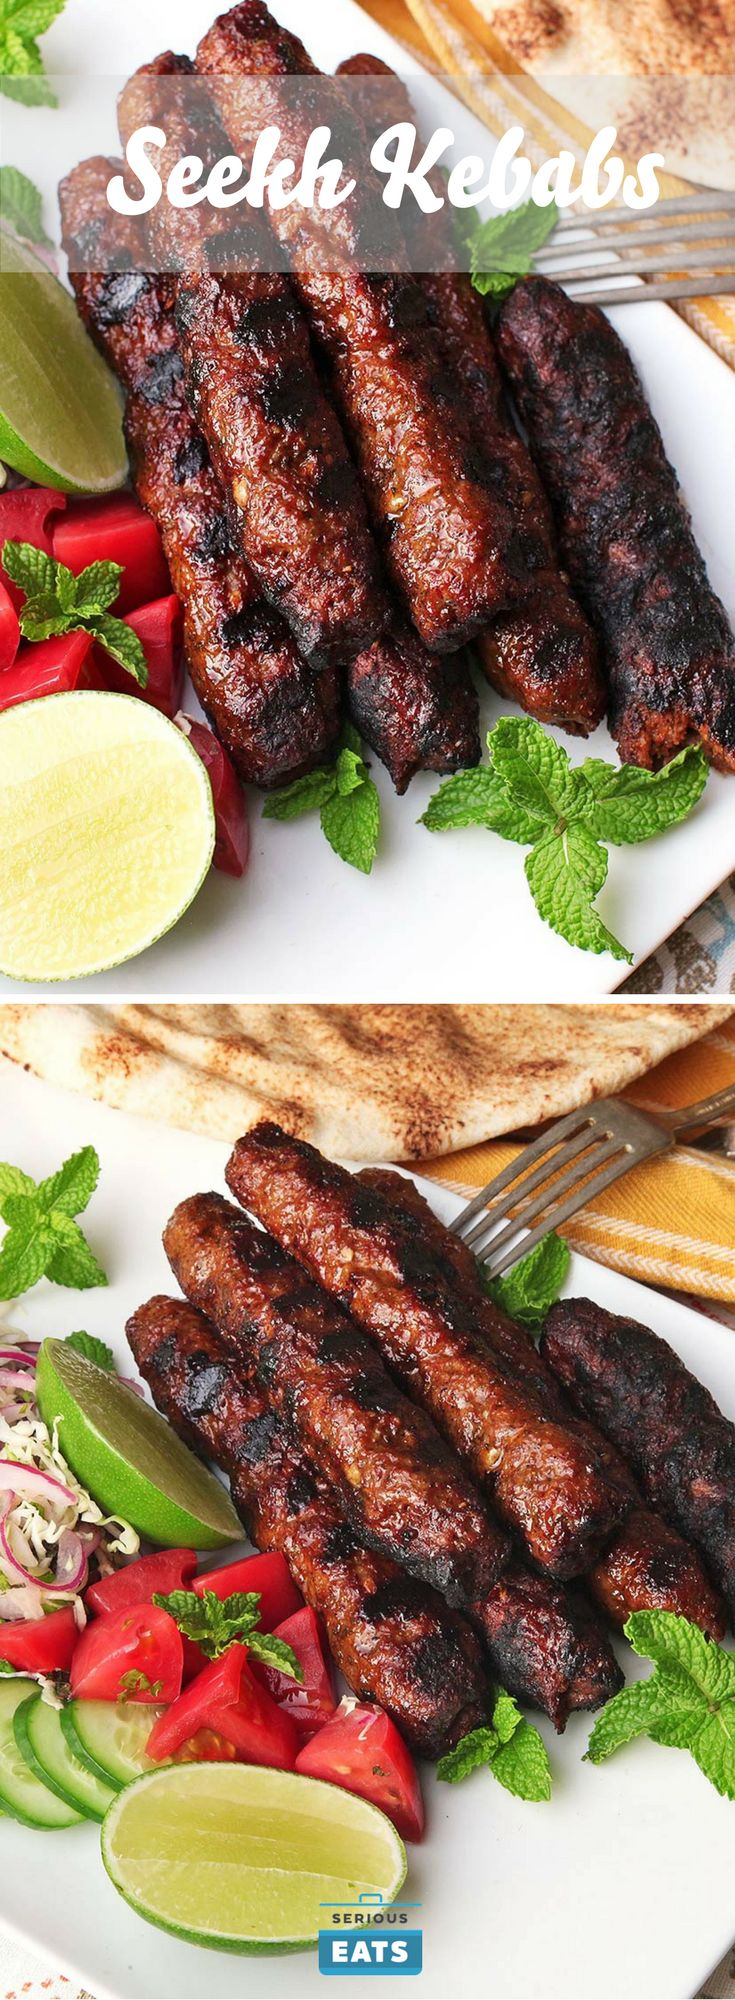 Spiced lamb kebabs, perfect for your next cookout.